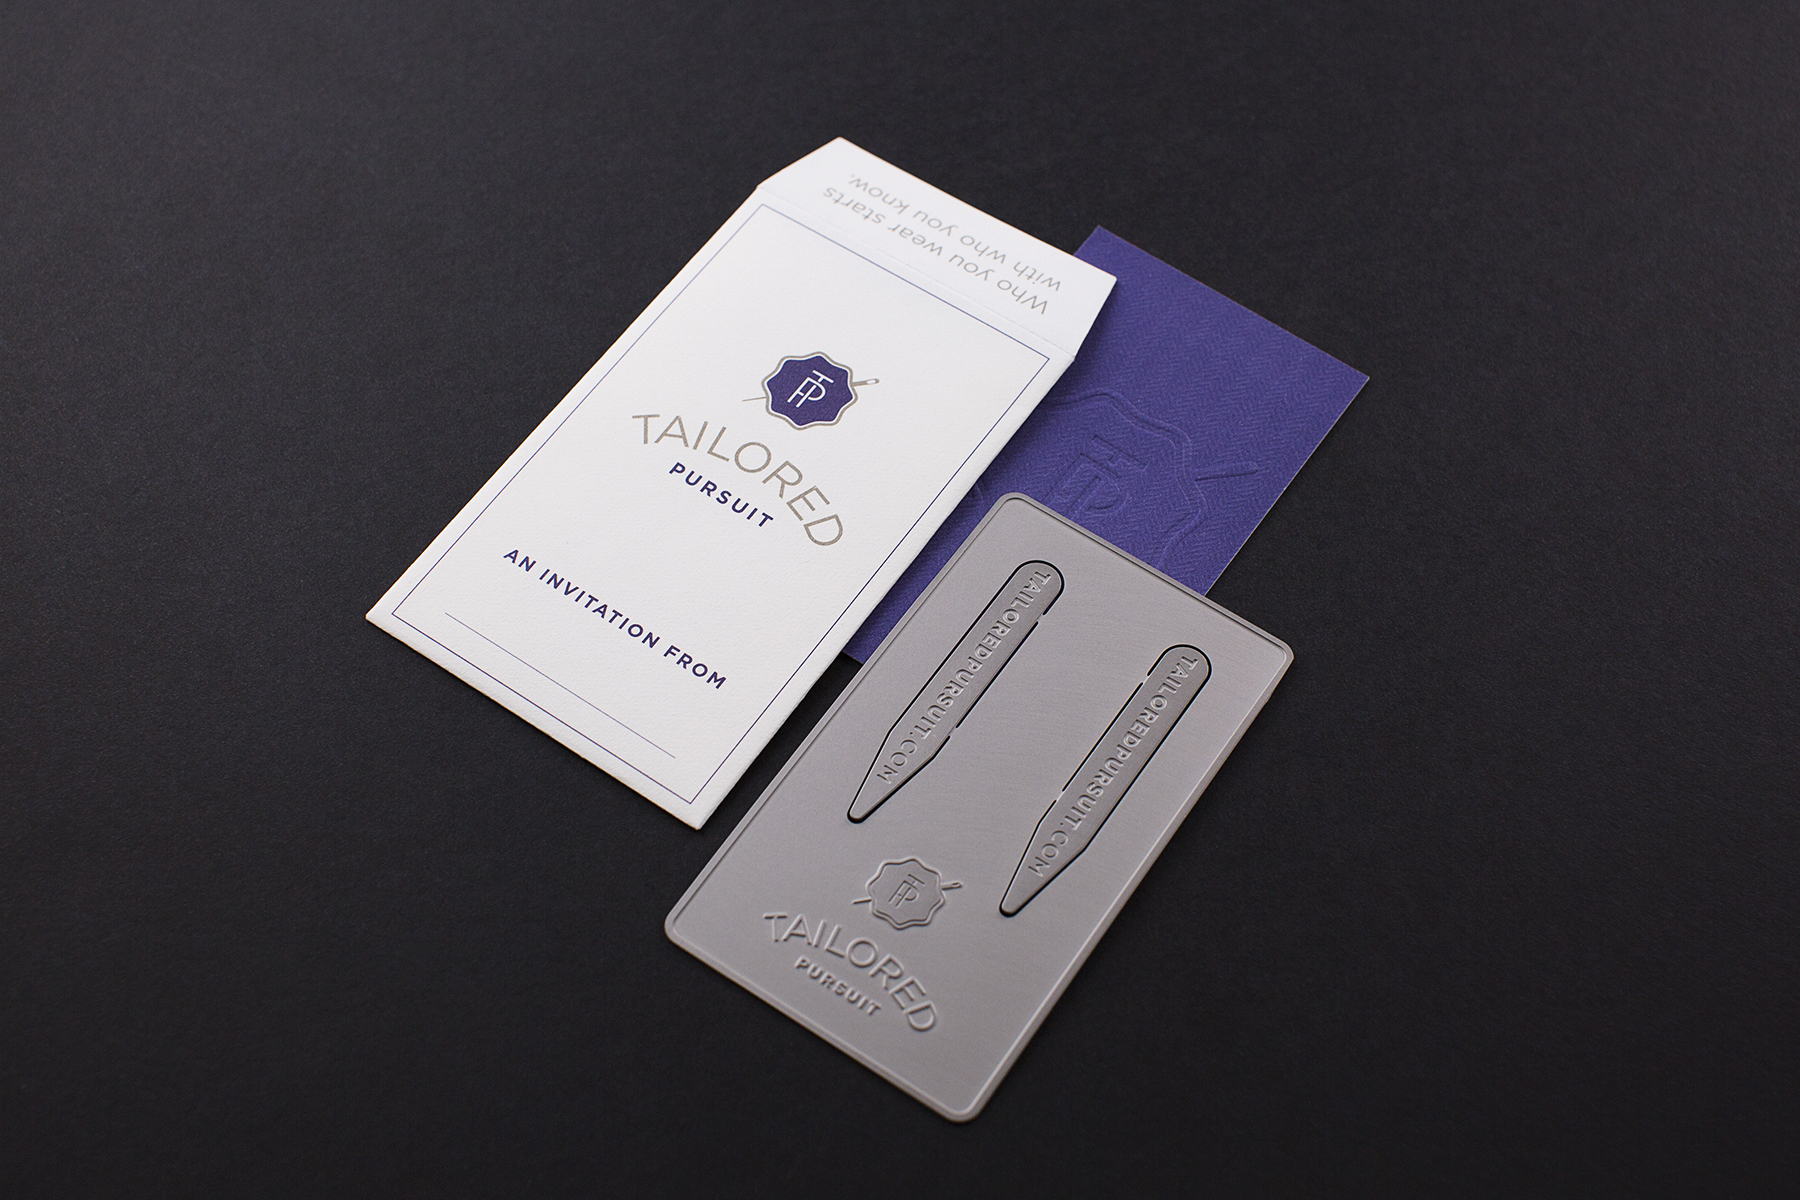 Tailored Pursuit asked for a promotional piece to hand out to potential members as an invitation. Here you see a business card as well as a set of collar stays made out of stainless steel.